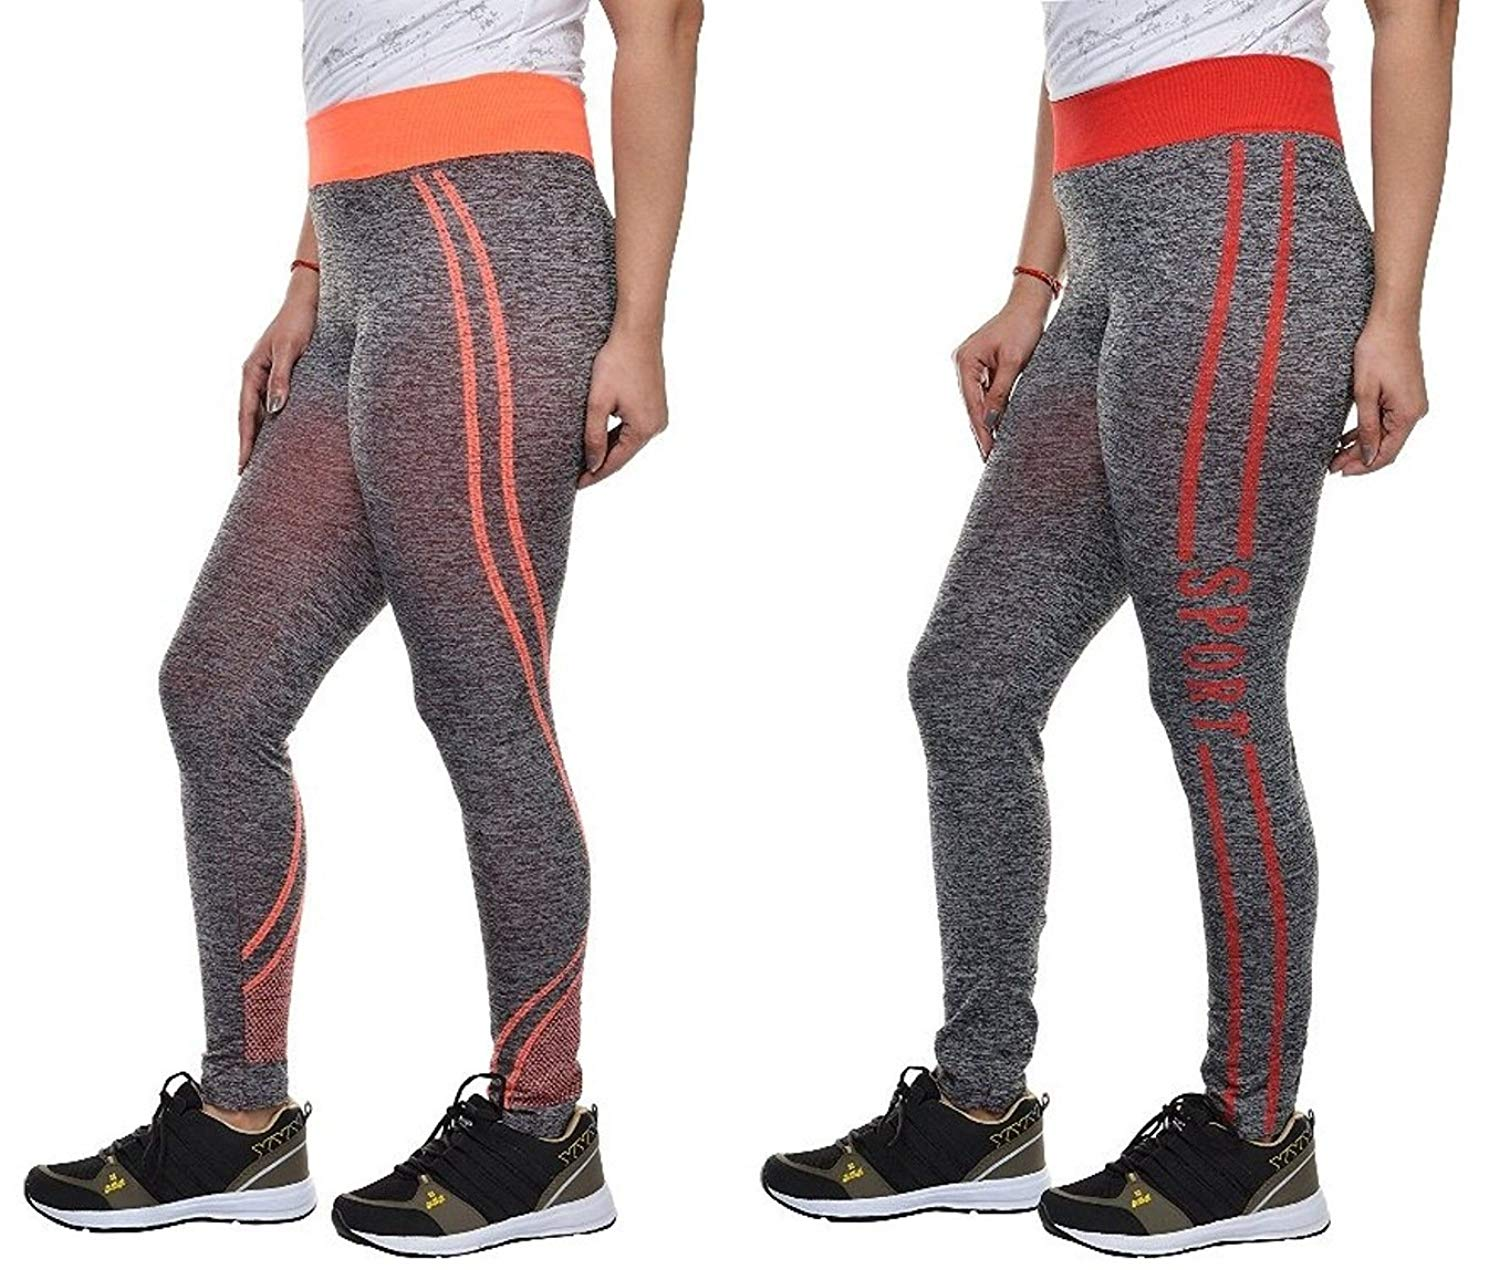 Golazo Girl's Stretchable High Waist Compression Yoga Fitness Tummy Tuck Sports and Gym Running Pant/Leggings- Amazon